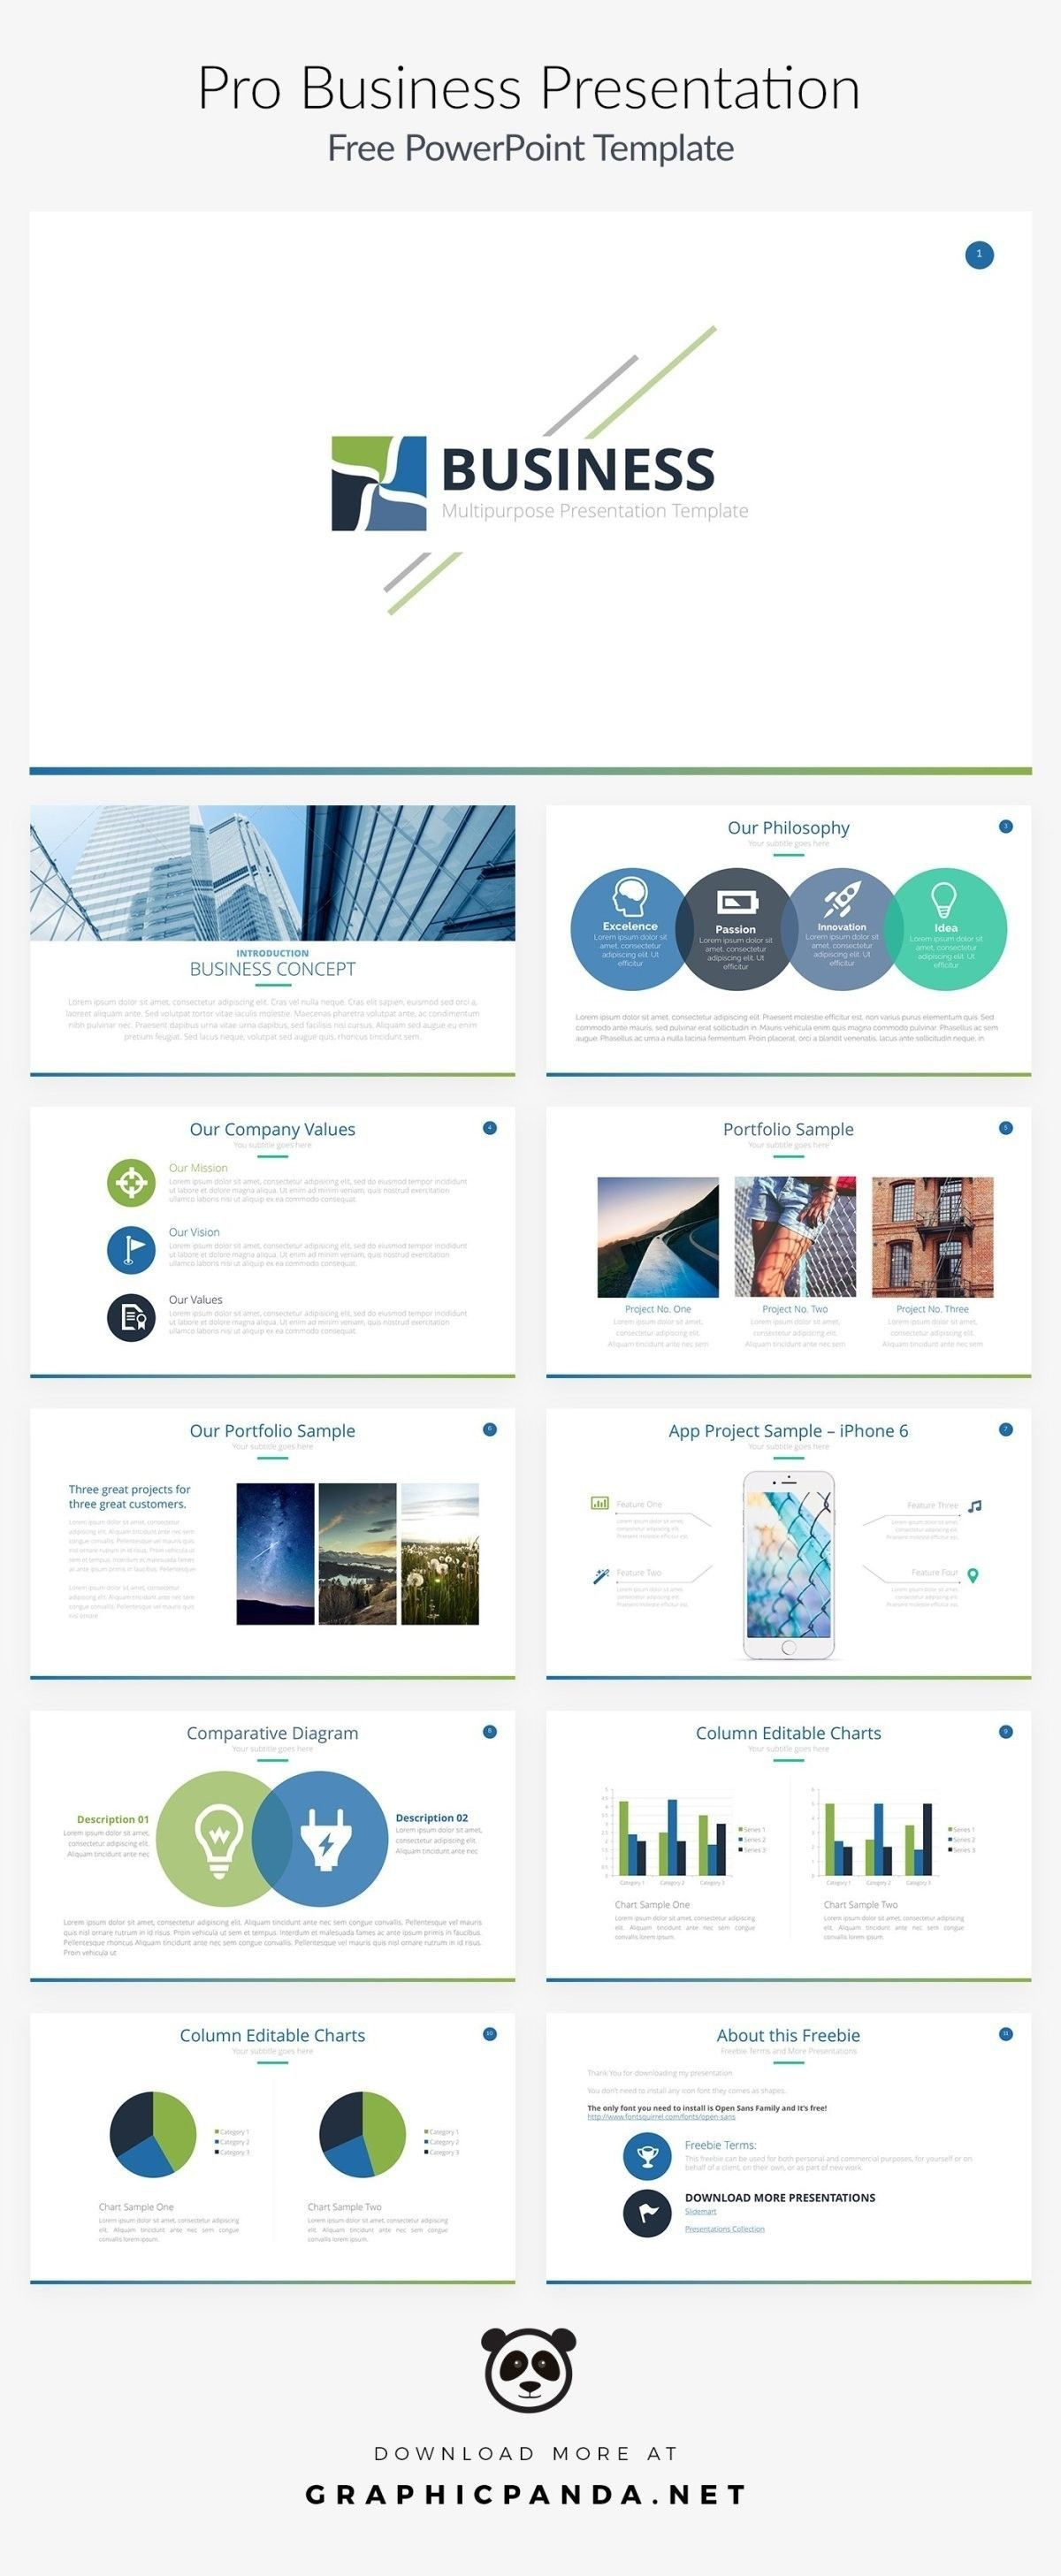 Free Horror Powerpoint Template Inspirational Pany Timeline Infographic E A Business Powerpoint Templates Free Business Card Templates Sample Business Cards